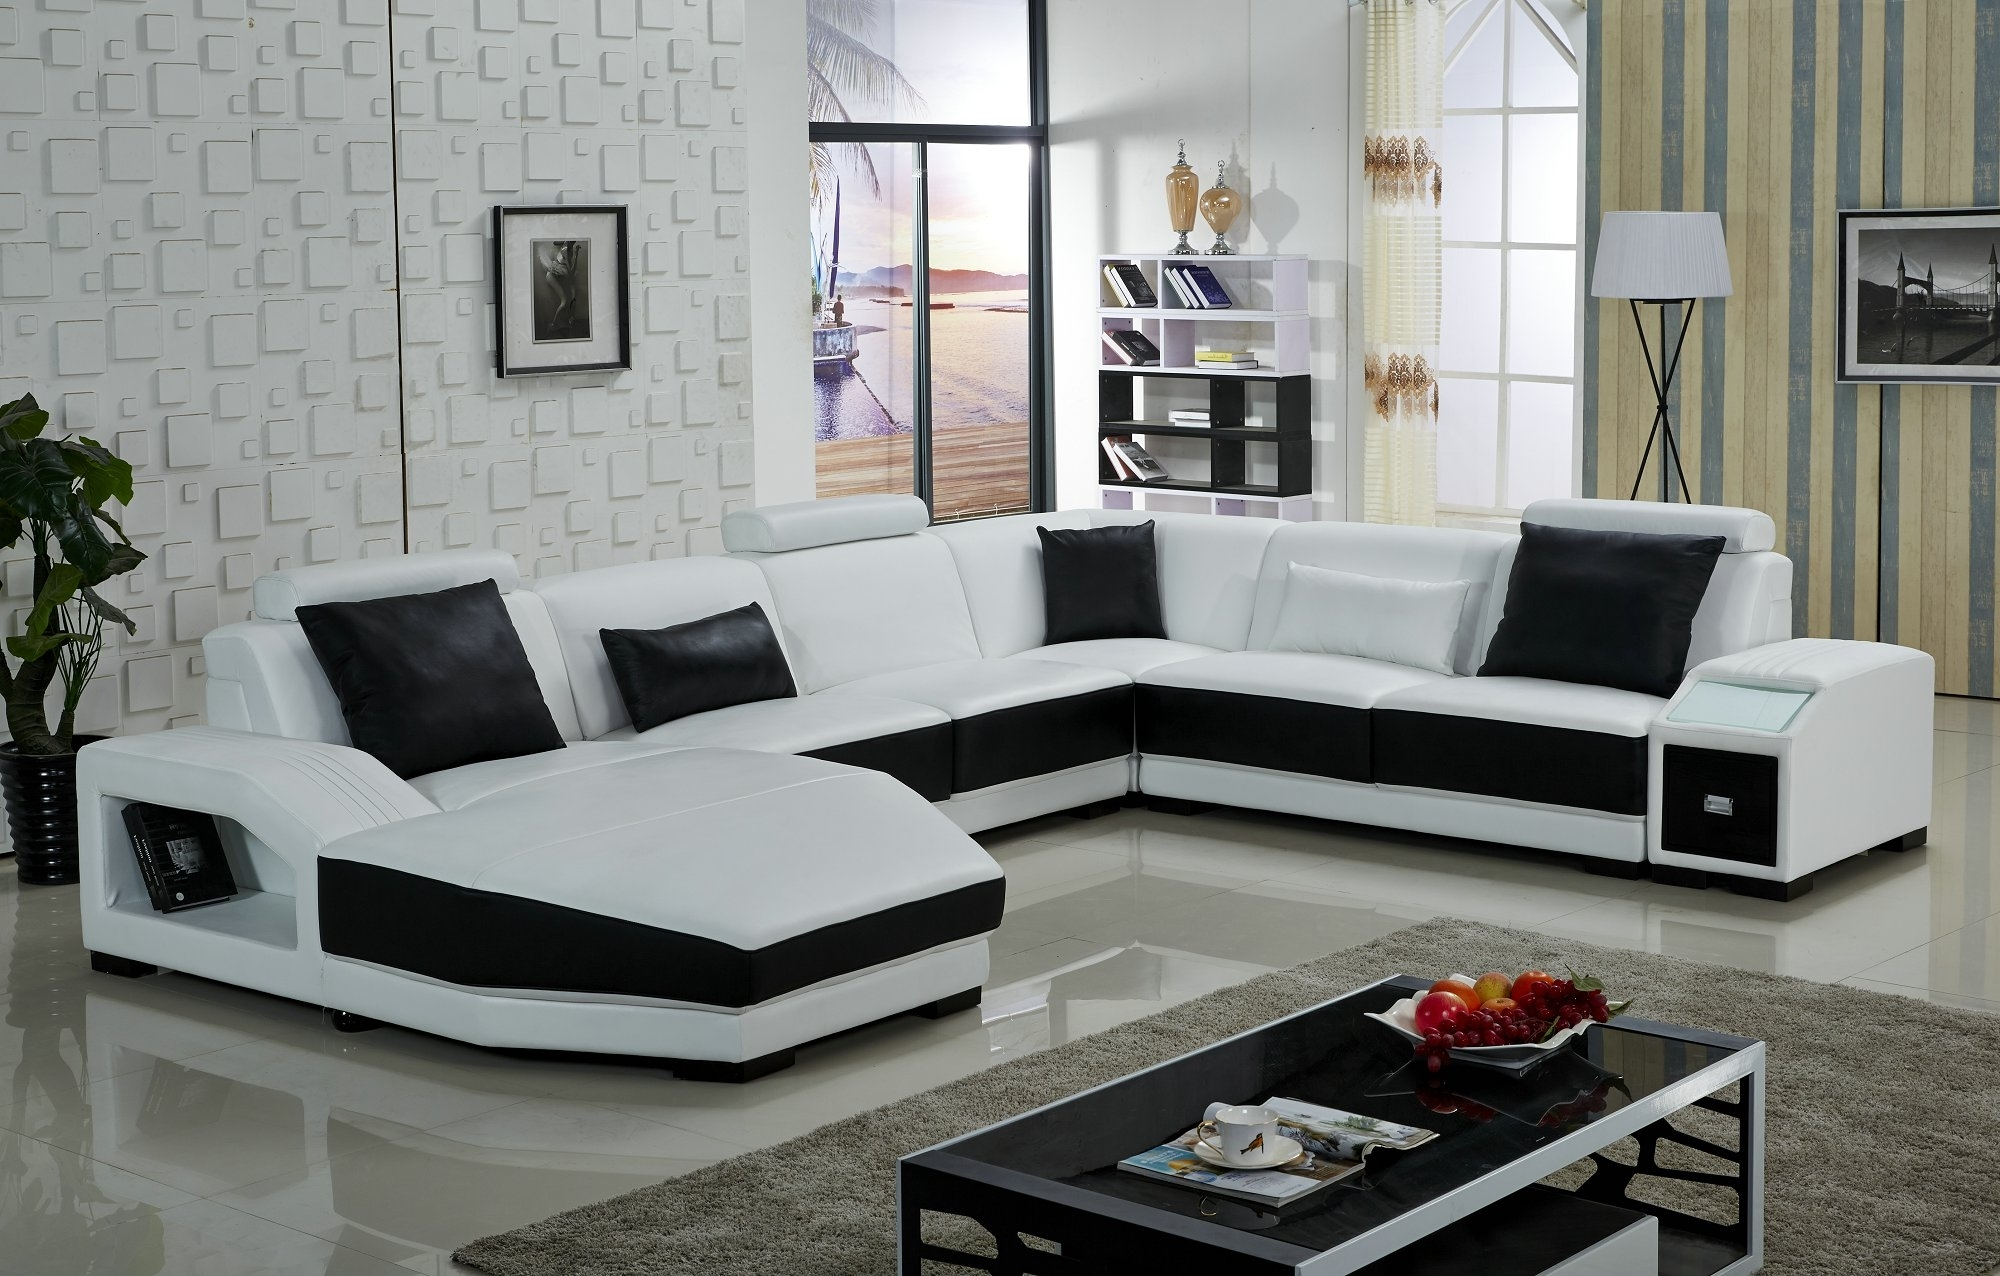 Best And Newest Sofa : U Shaped Couch Ikea Sofa Bed U Shaped Sectional Double With Regard To Modern U Shaped Sectional Sofas (View 2 of 20)